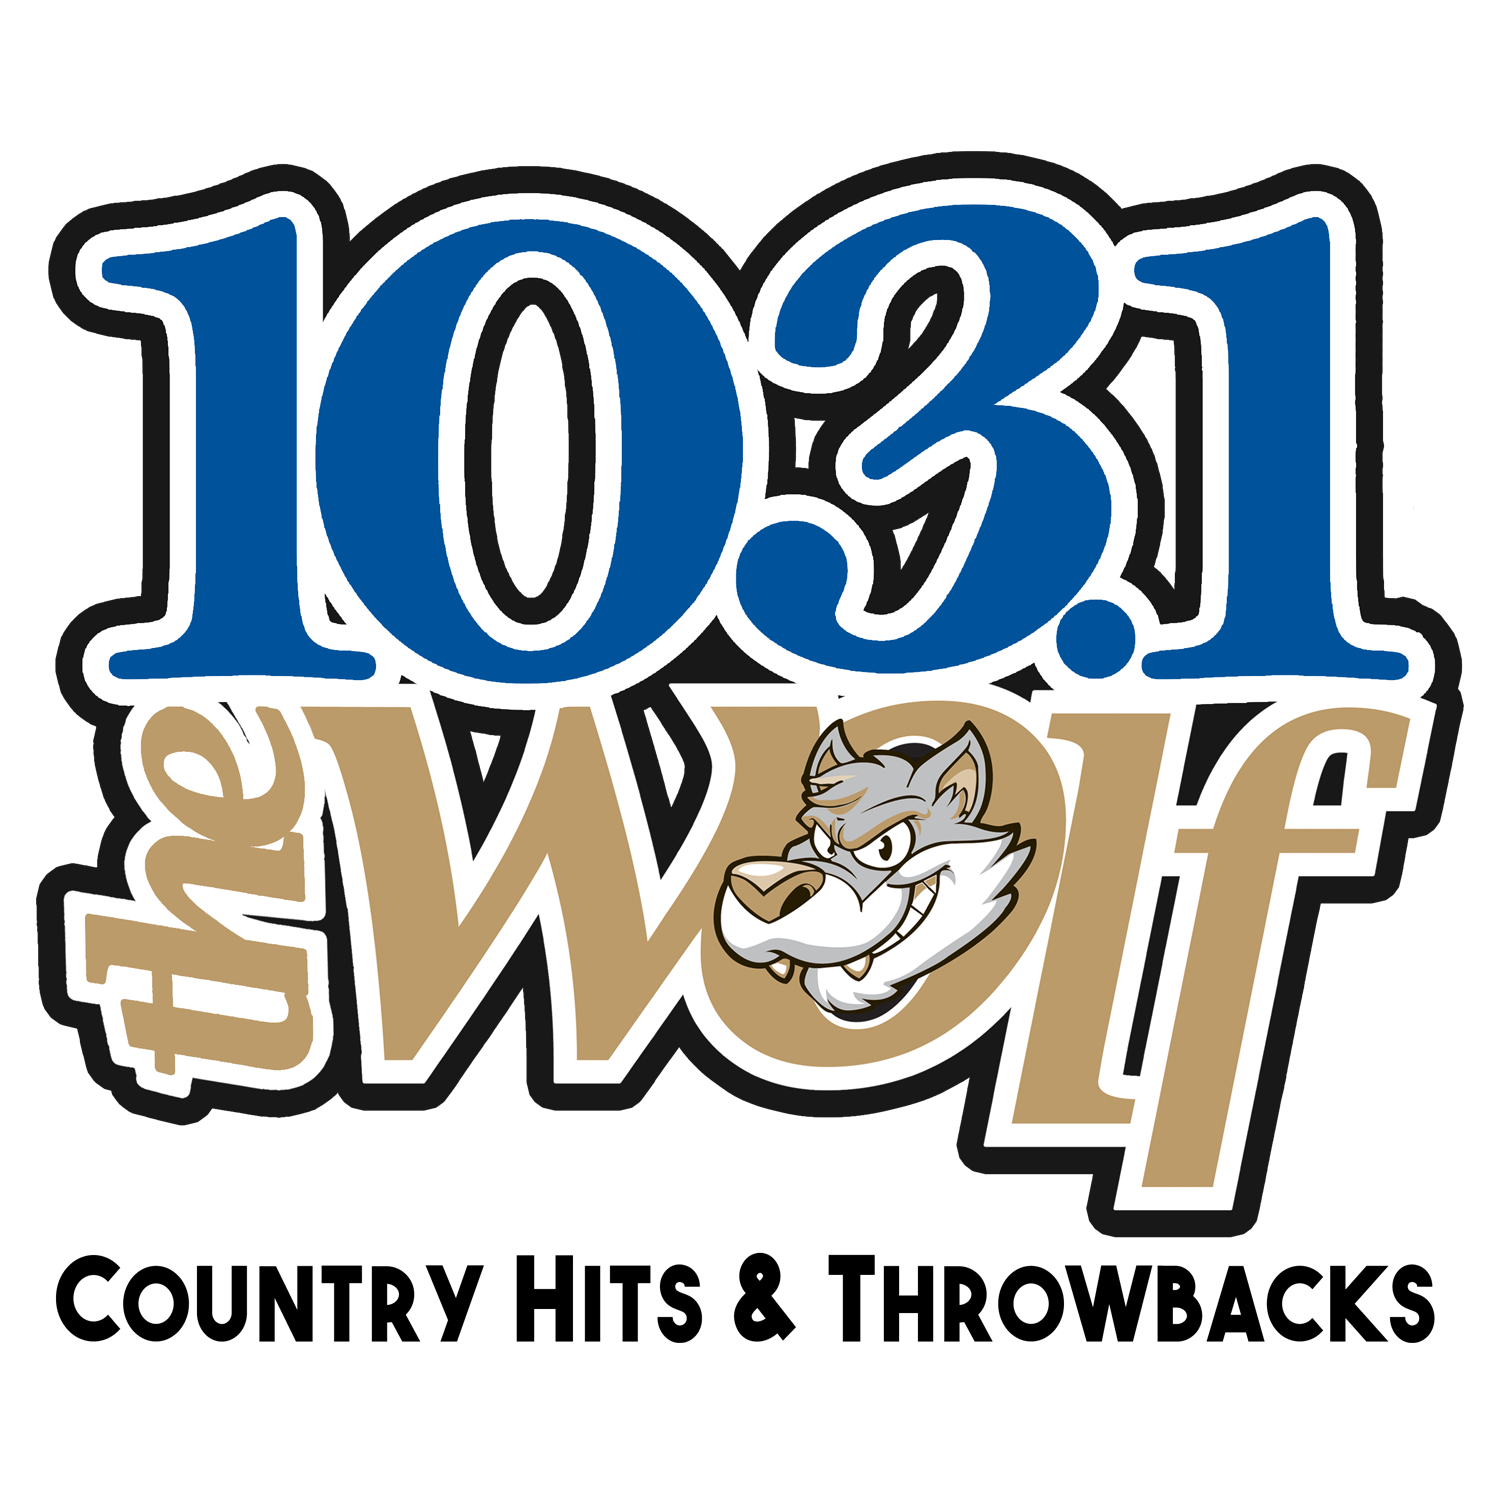 Whatever She\'s Got by David Nail - 103.1 The Wolf